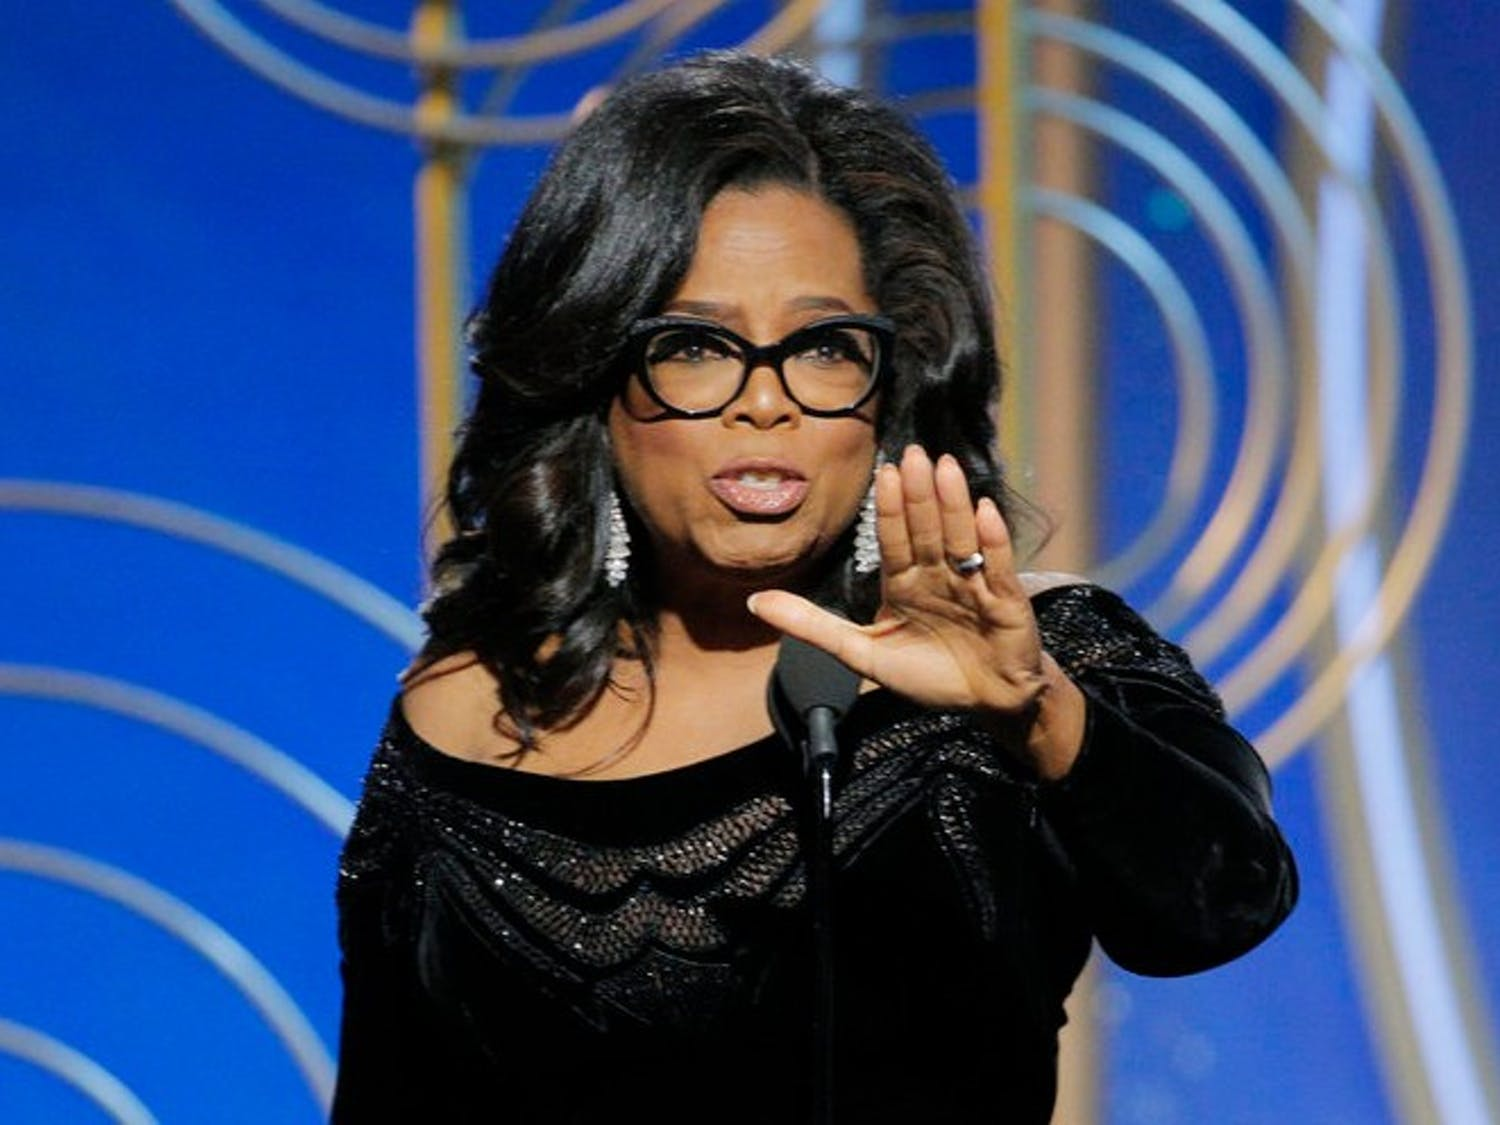 75th ANNUAL GOLDEN GLOBE AWARDS -- Pictured: Oprah Winfrey, Winner, Cecil B. Demille Award at the 75th Annual Golden Globe Awards held at the Beverly Hilton Hotel on January 7, 2018 -- (Photo by: Paul Drinkwater/NBC)